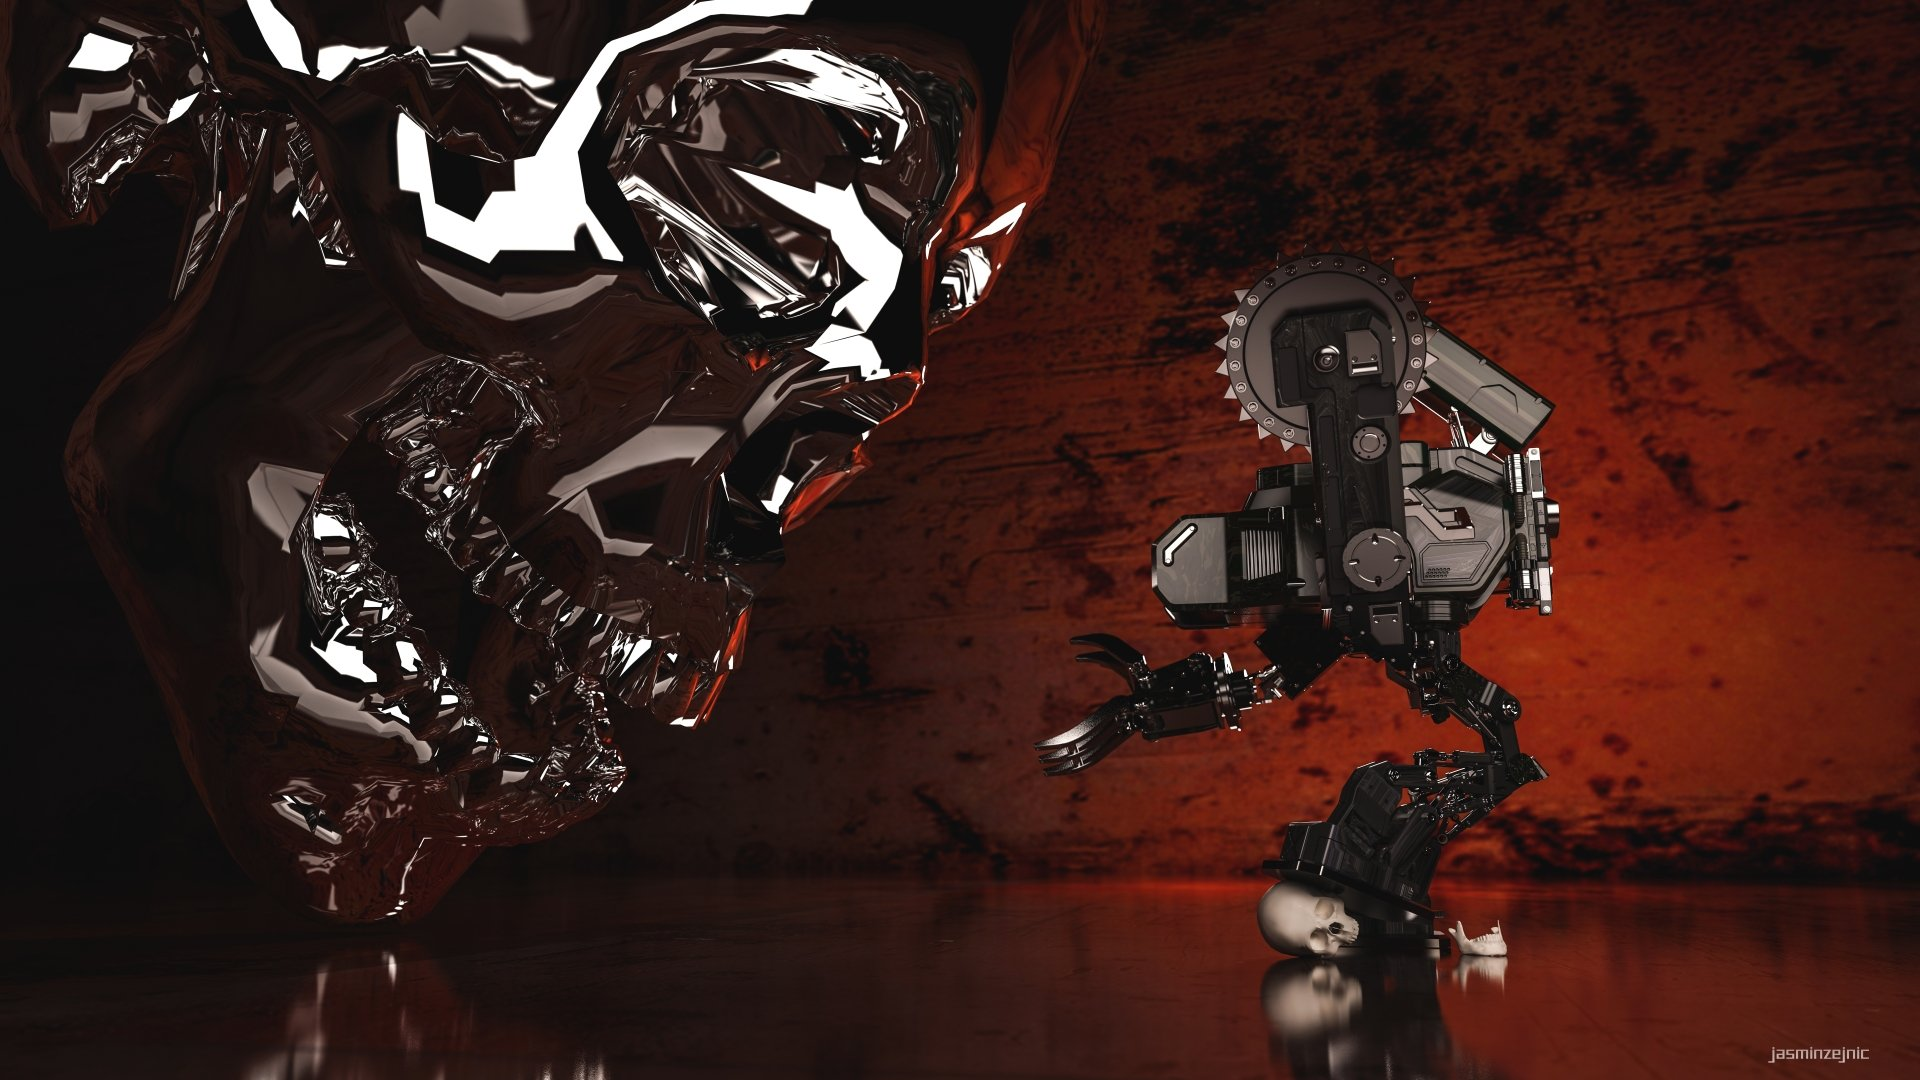 Sci Fi - Robot  3D CGI Digital High Tech Machine Skull Digital Art Sci Fi Wallpaper